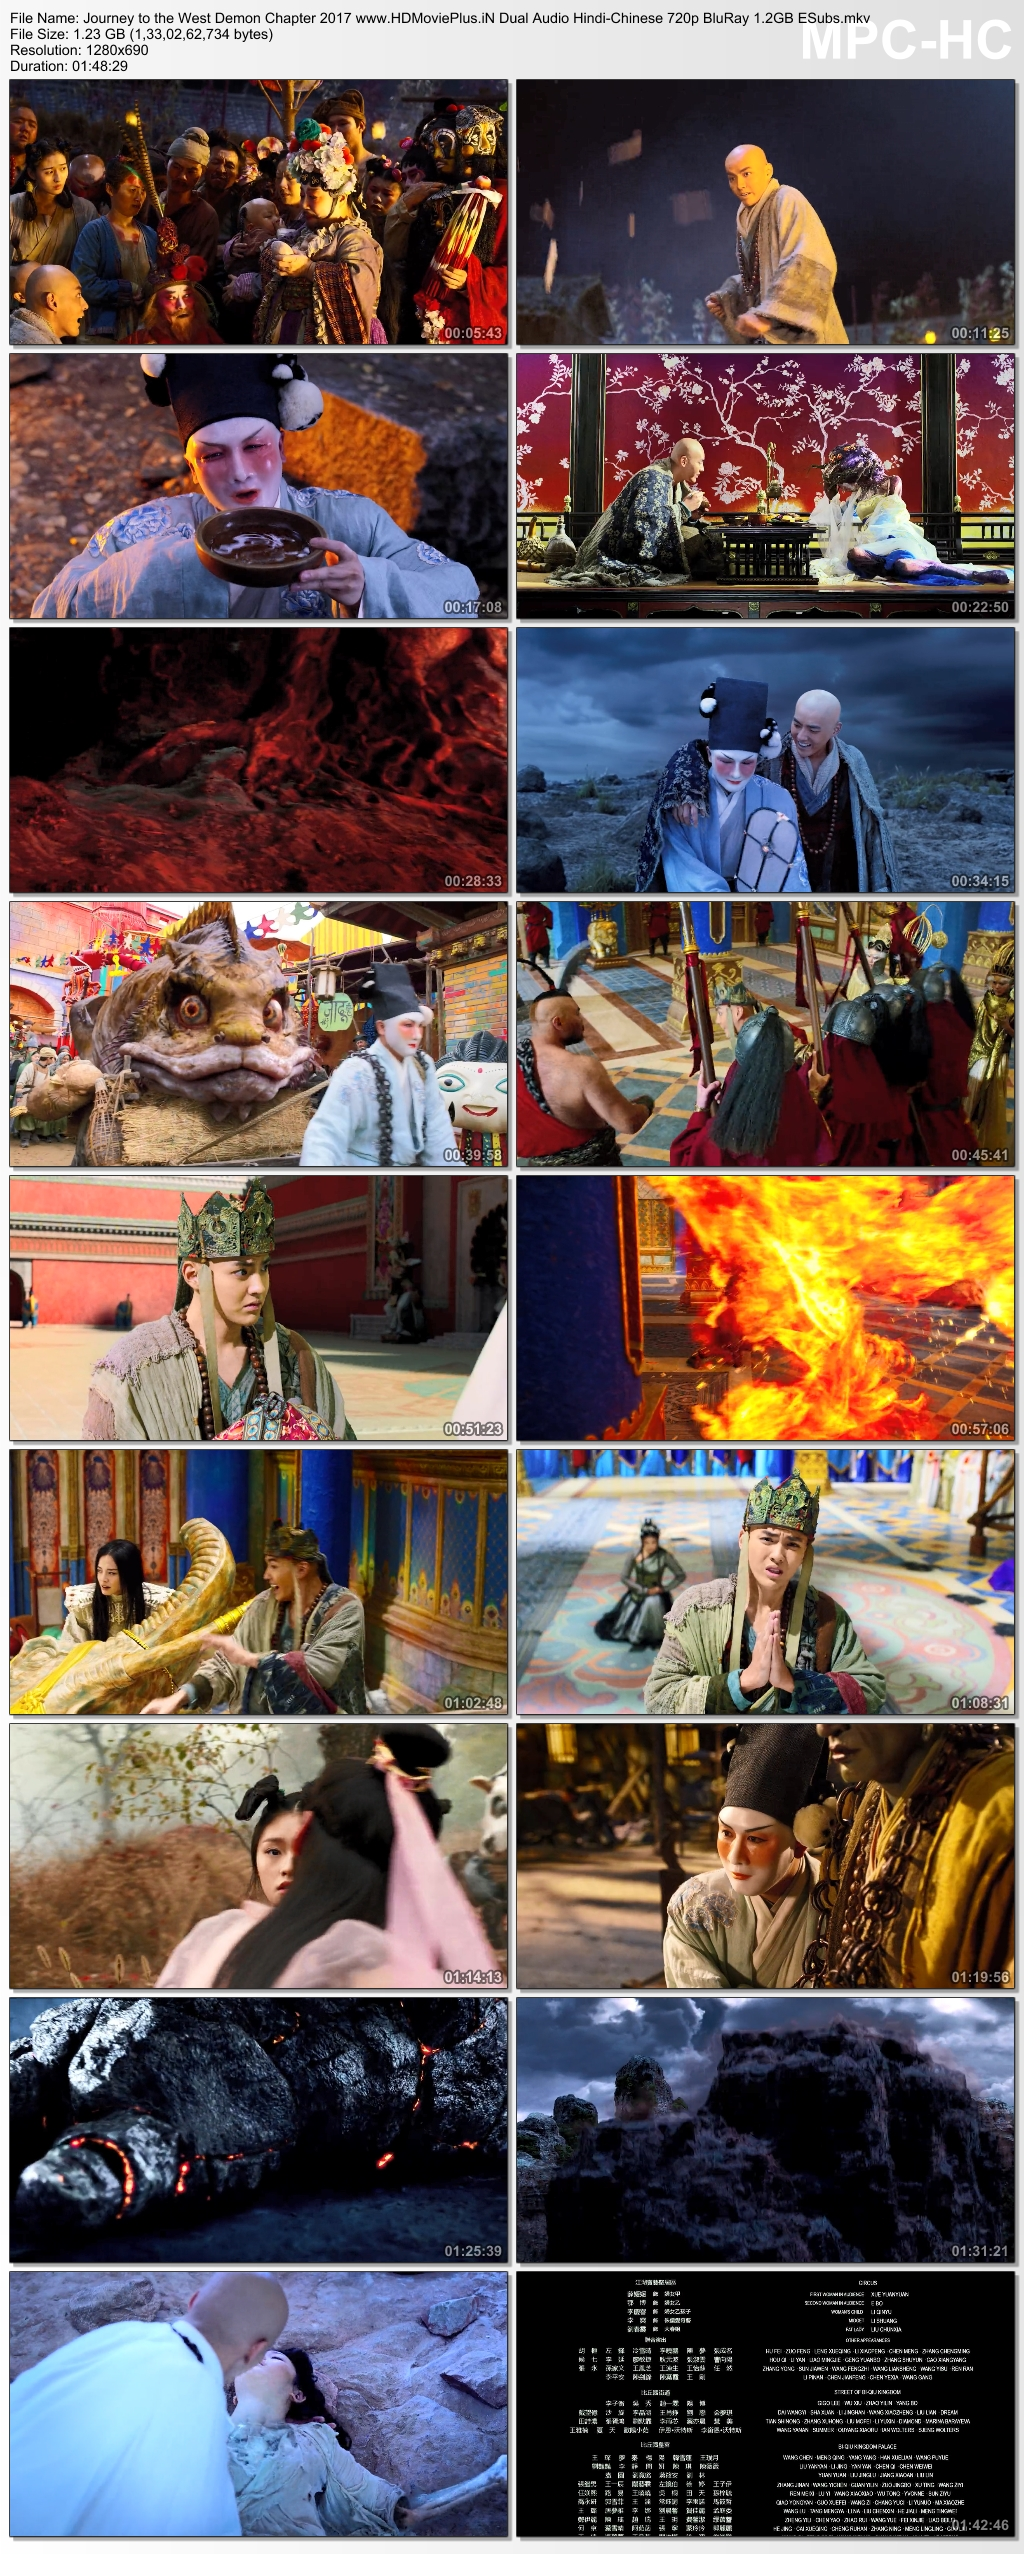 Journey to the West: Demon Chapter 2017 Dual Audio